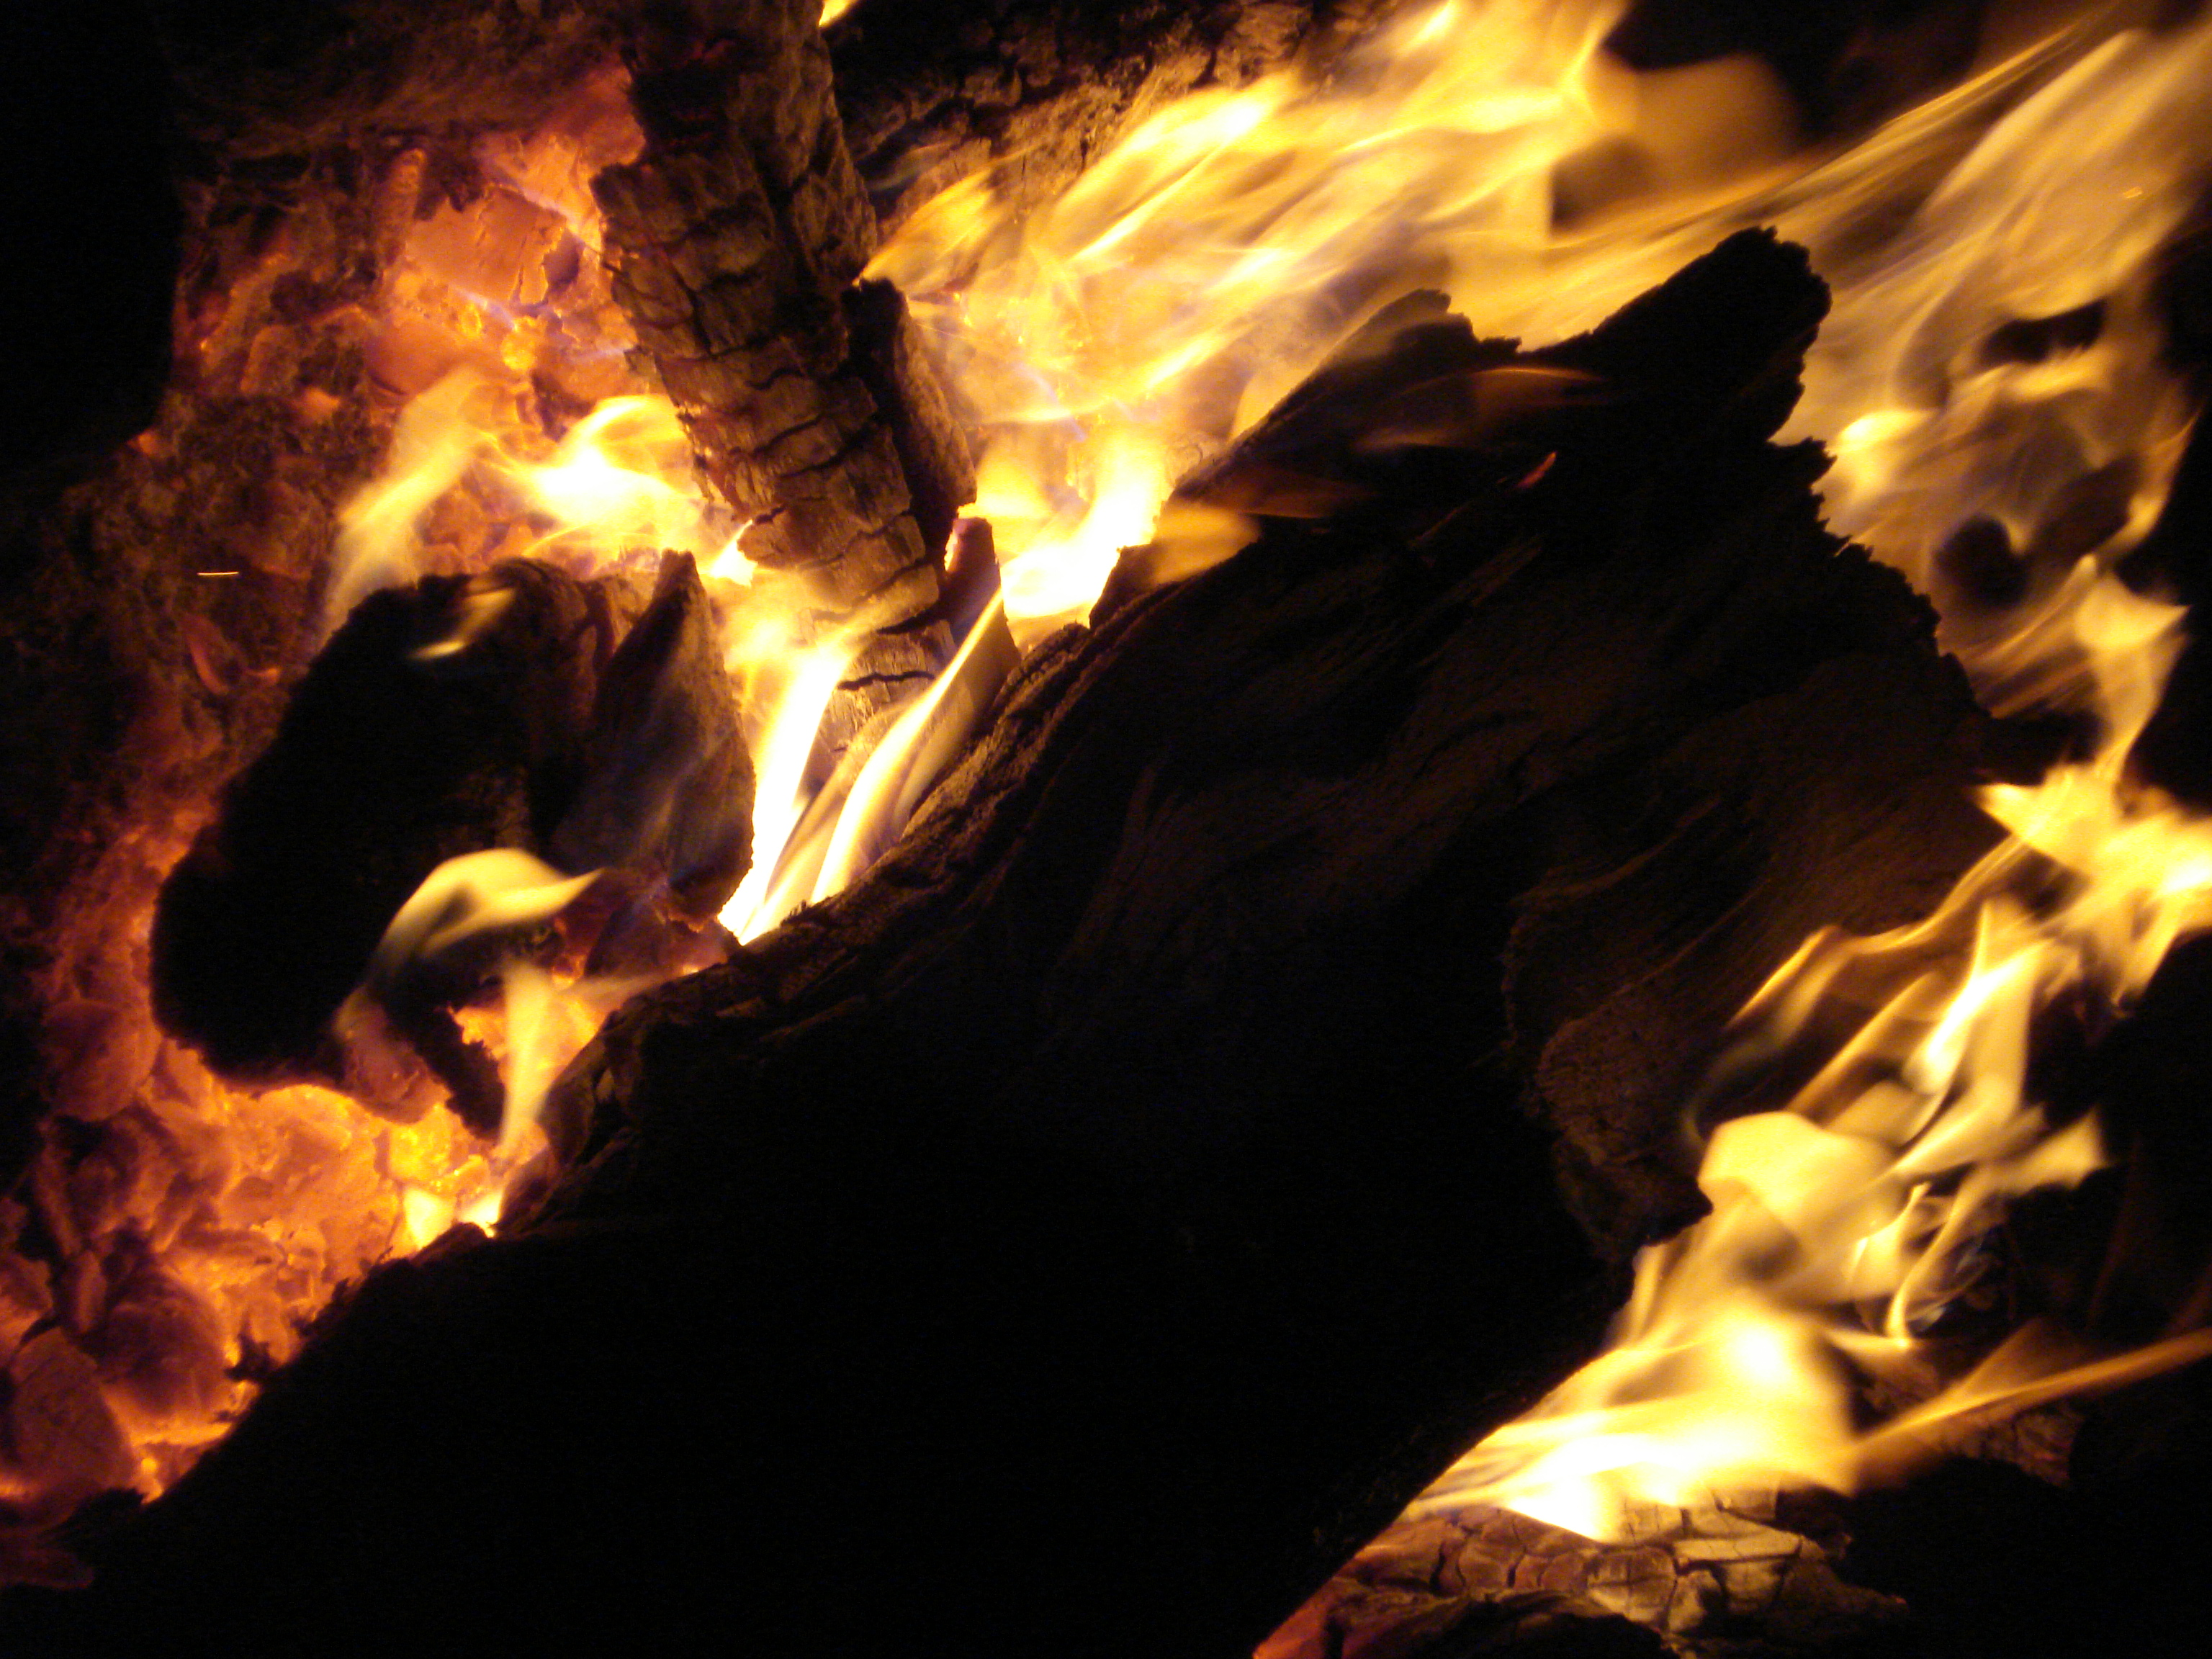 Flames from burning wood photo